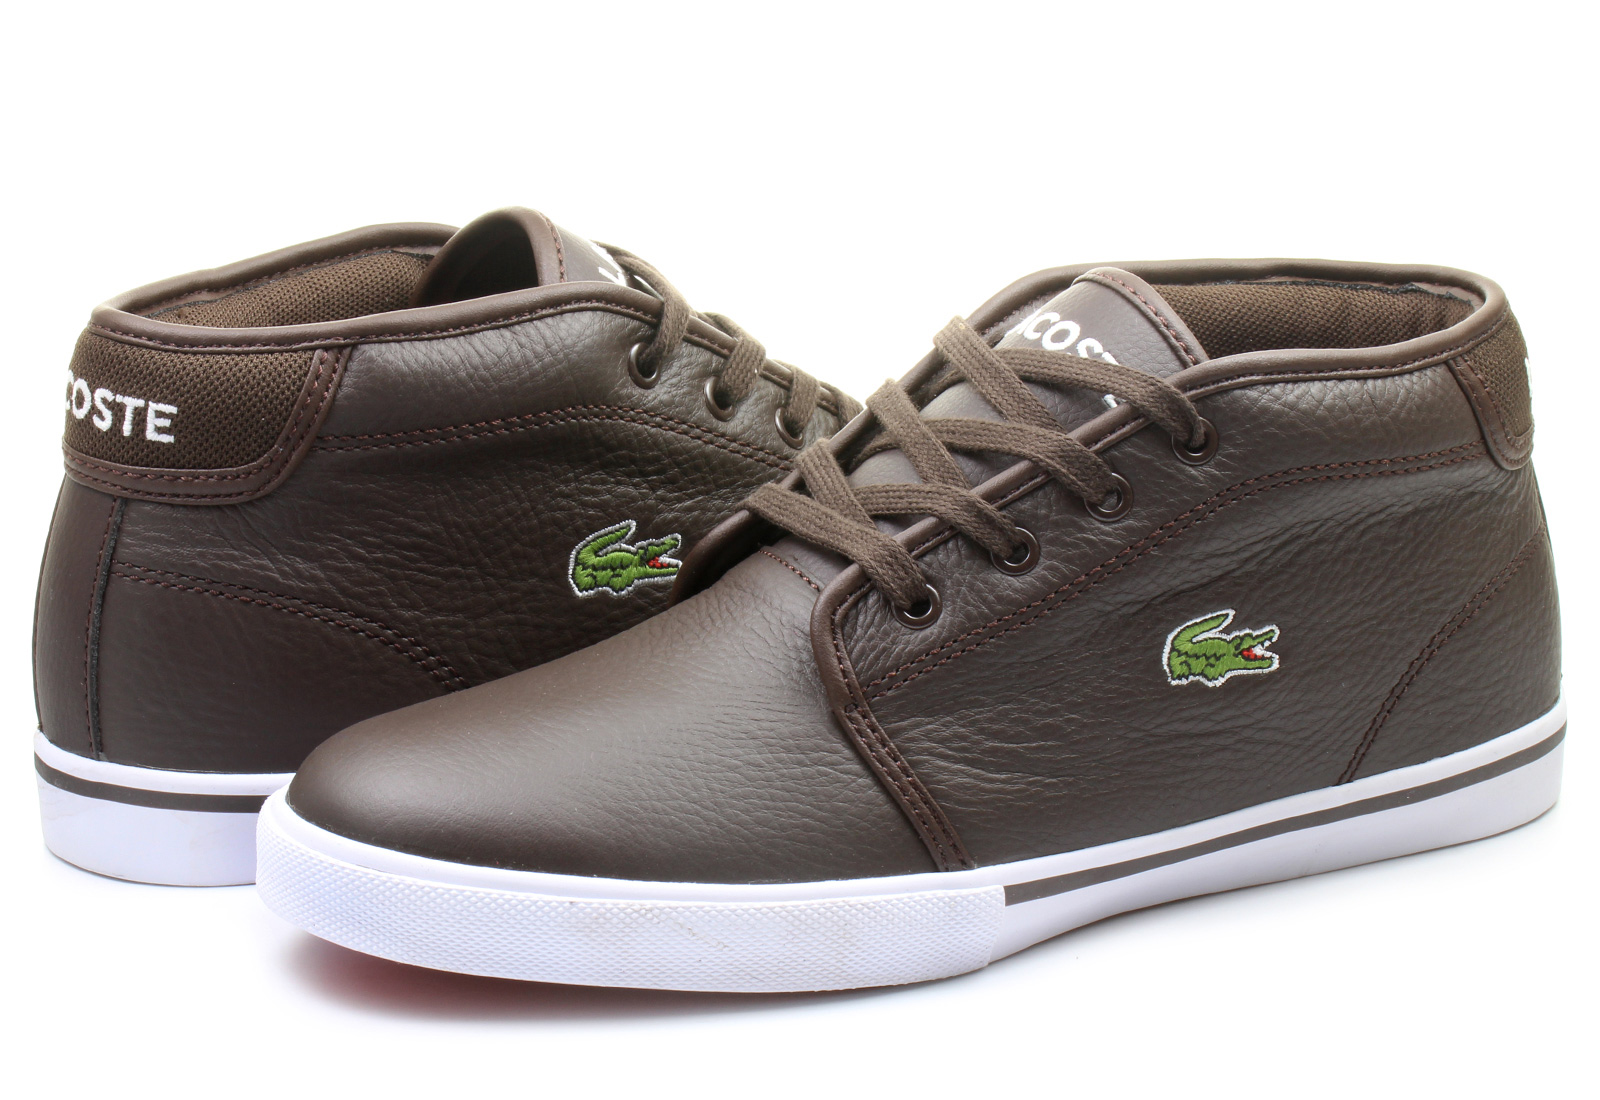 Lacoste Shoes - Ampthill - 143spm1074-db2